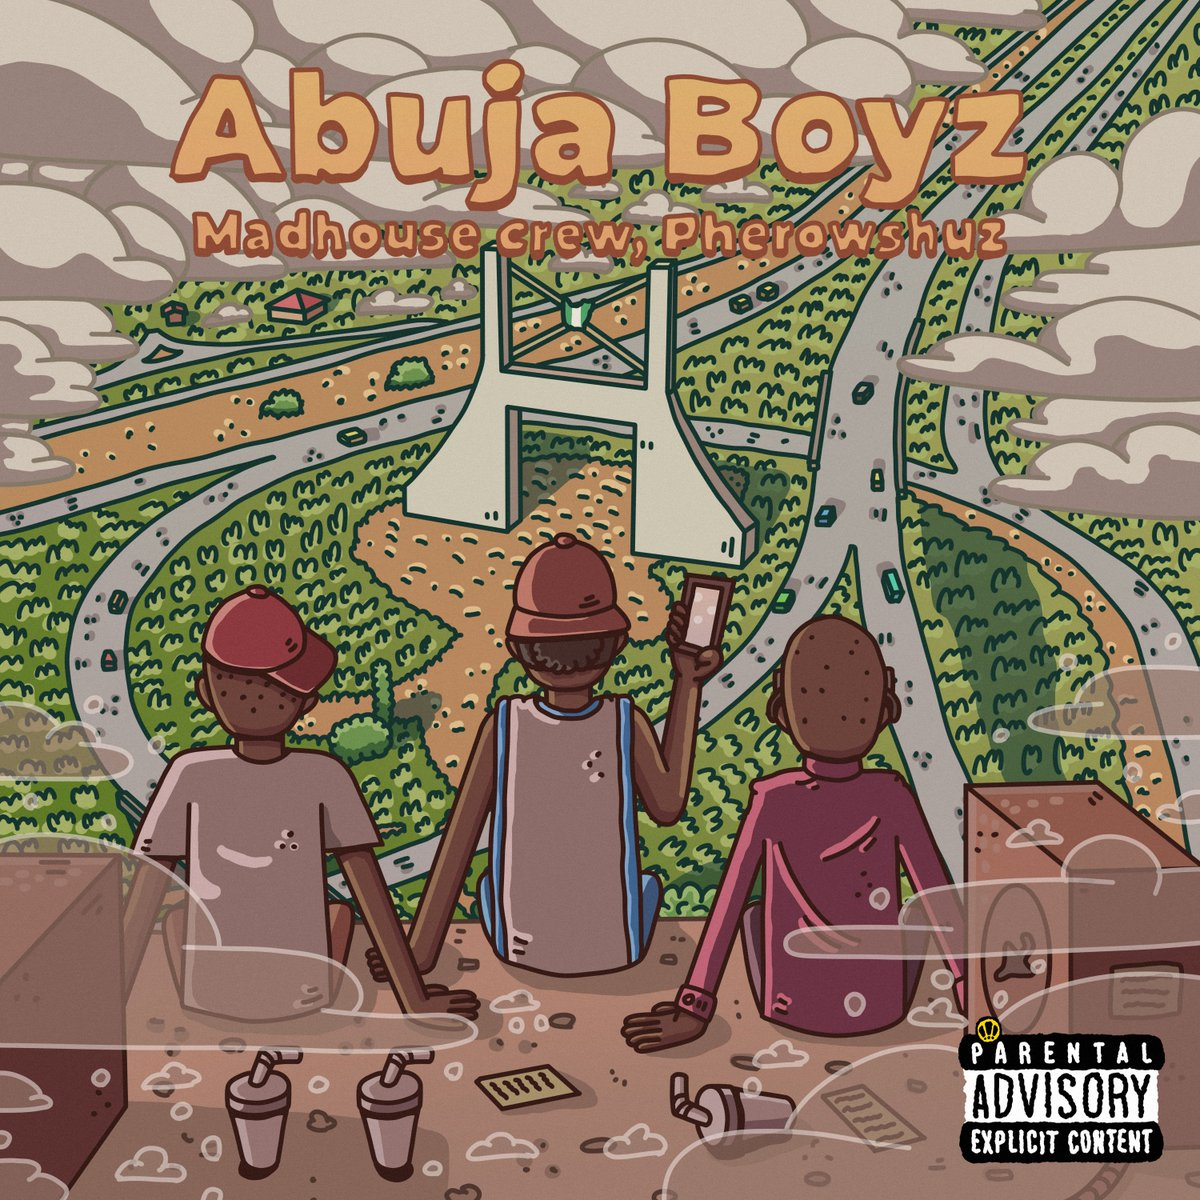 #Np Abuja Boyz @ourmadhouseng ft. @Iampherow  #GoodMorningNigeriaShow with @UsoroEdima #Edima   #MondayMotivation #BeSafe  #EspressoDay  #CashewDay   Listen live: https://t.co/APoEkCjqwo https://t.co/0BSLkWcZs8